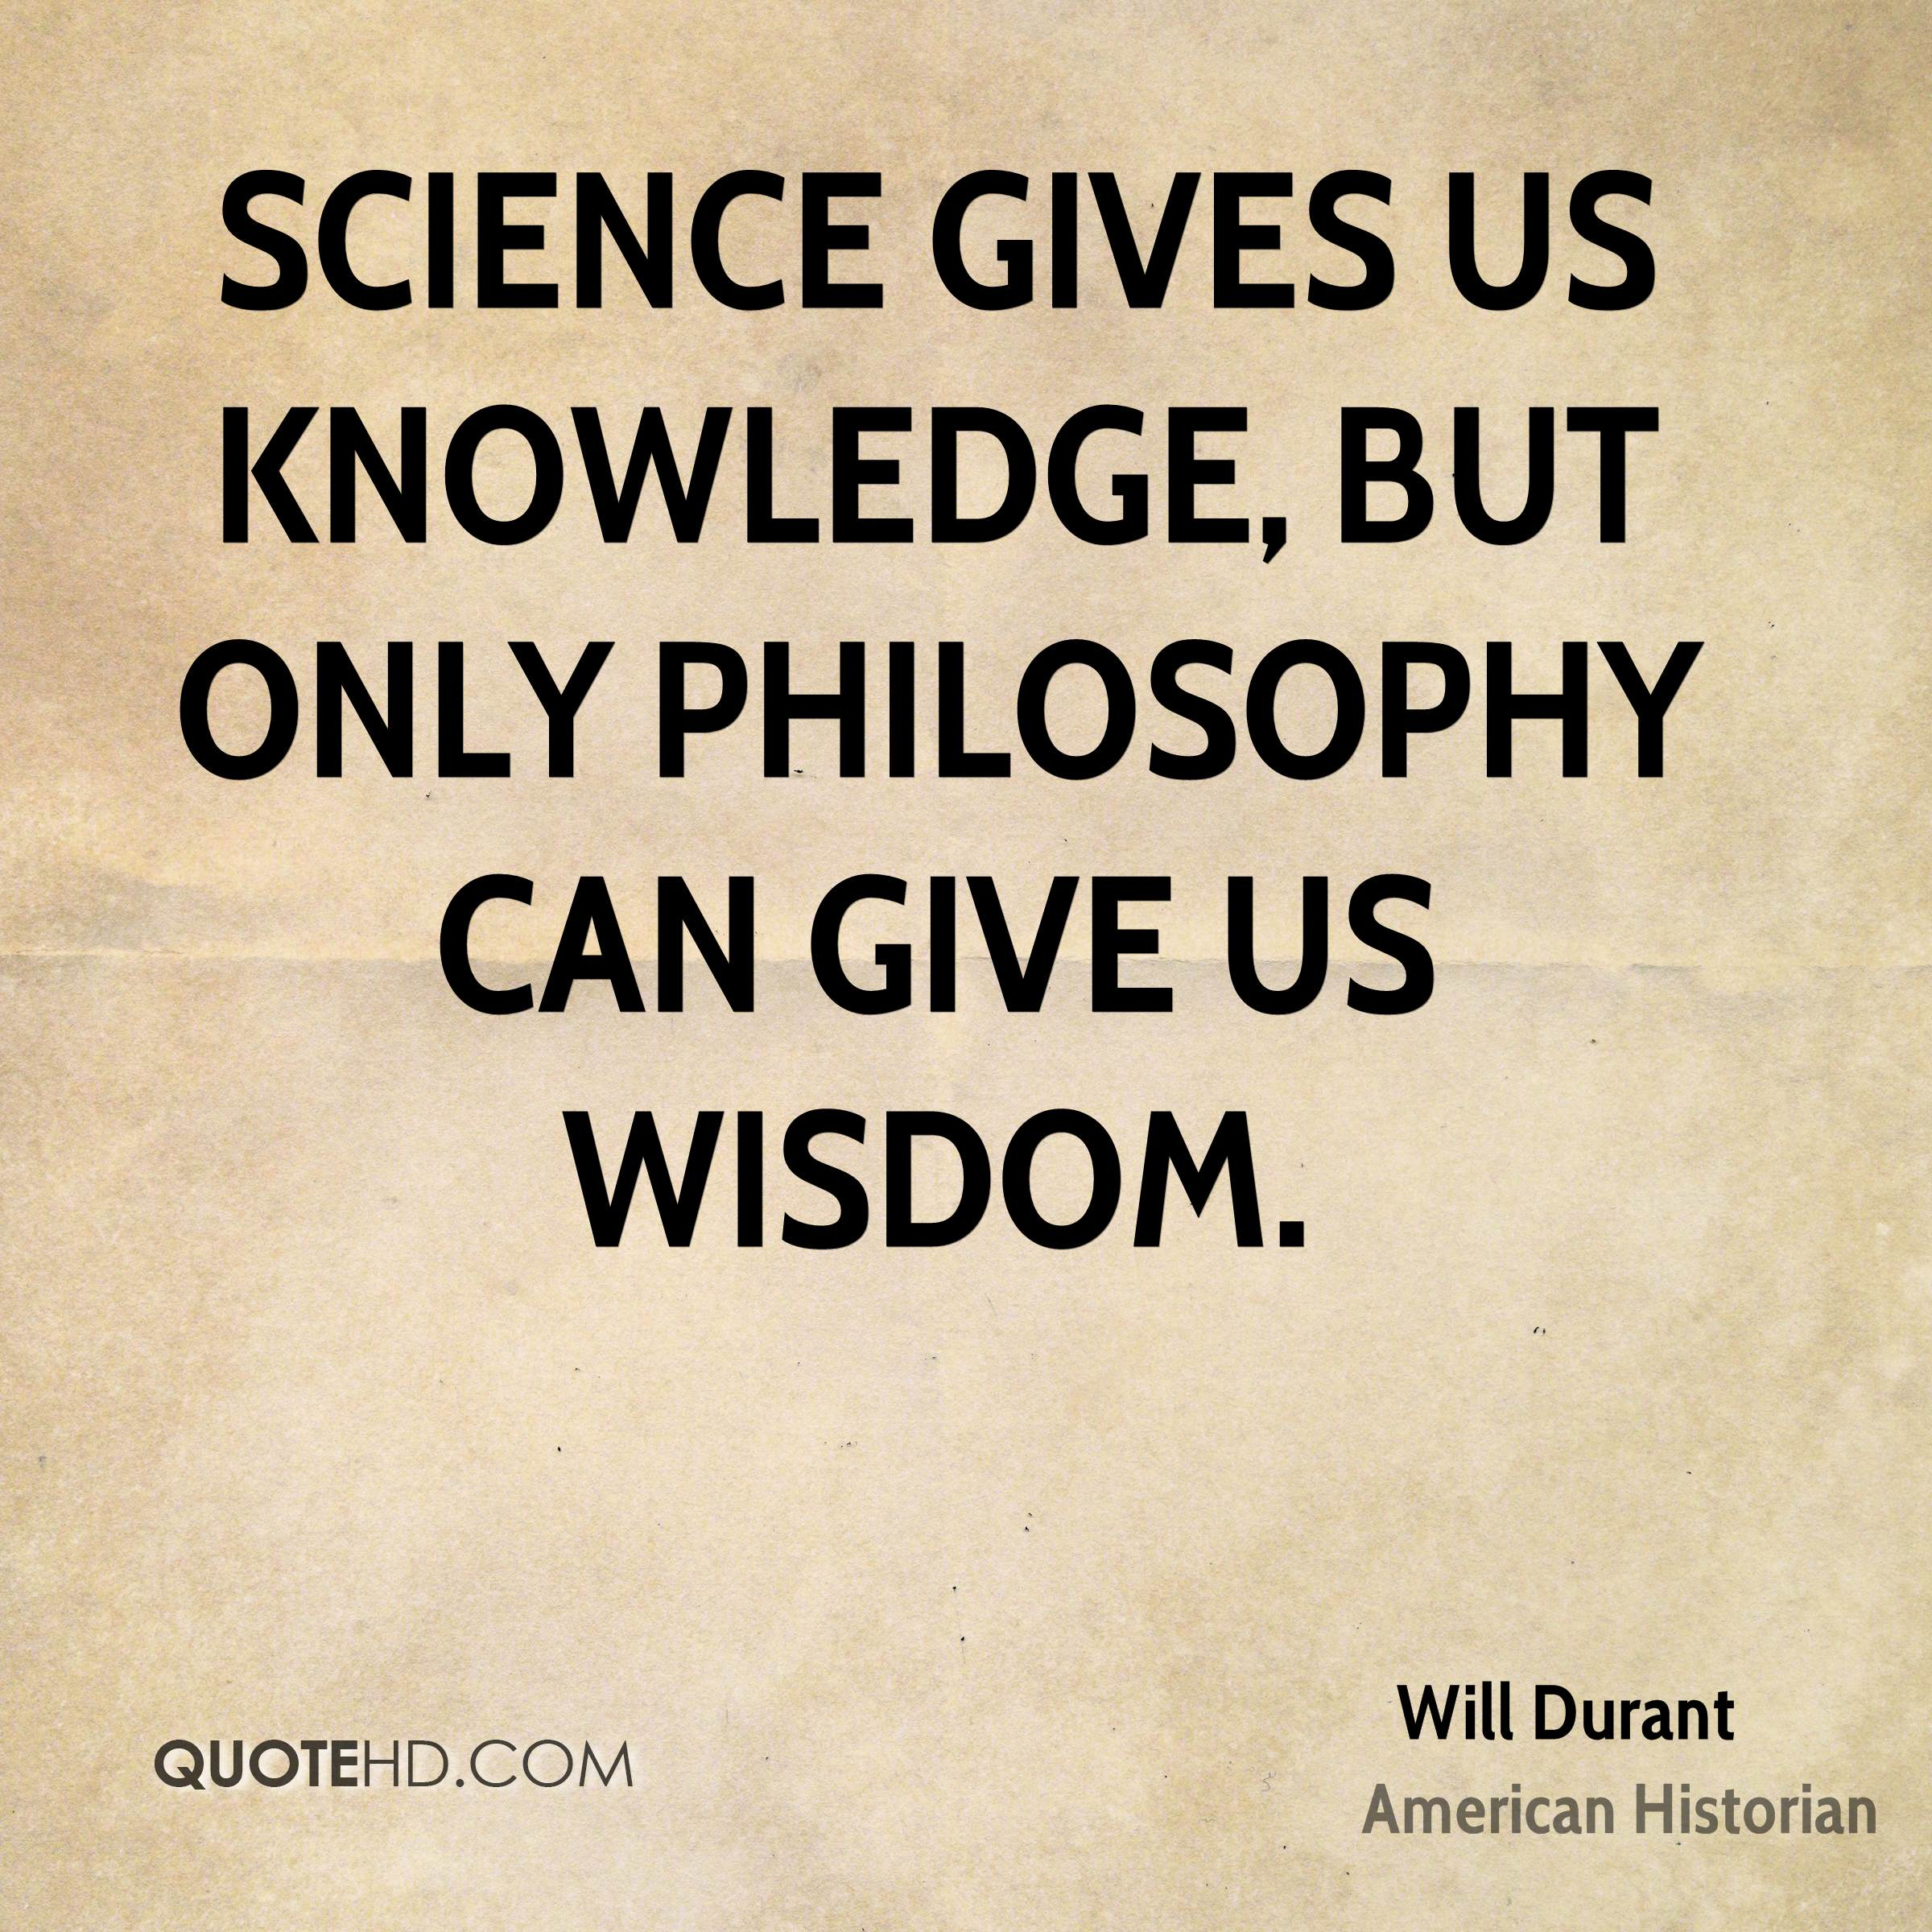 Science gives us knowledge, but only philosophy can give us wisdom.